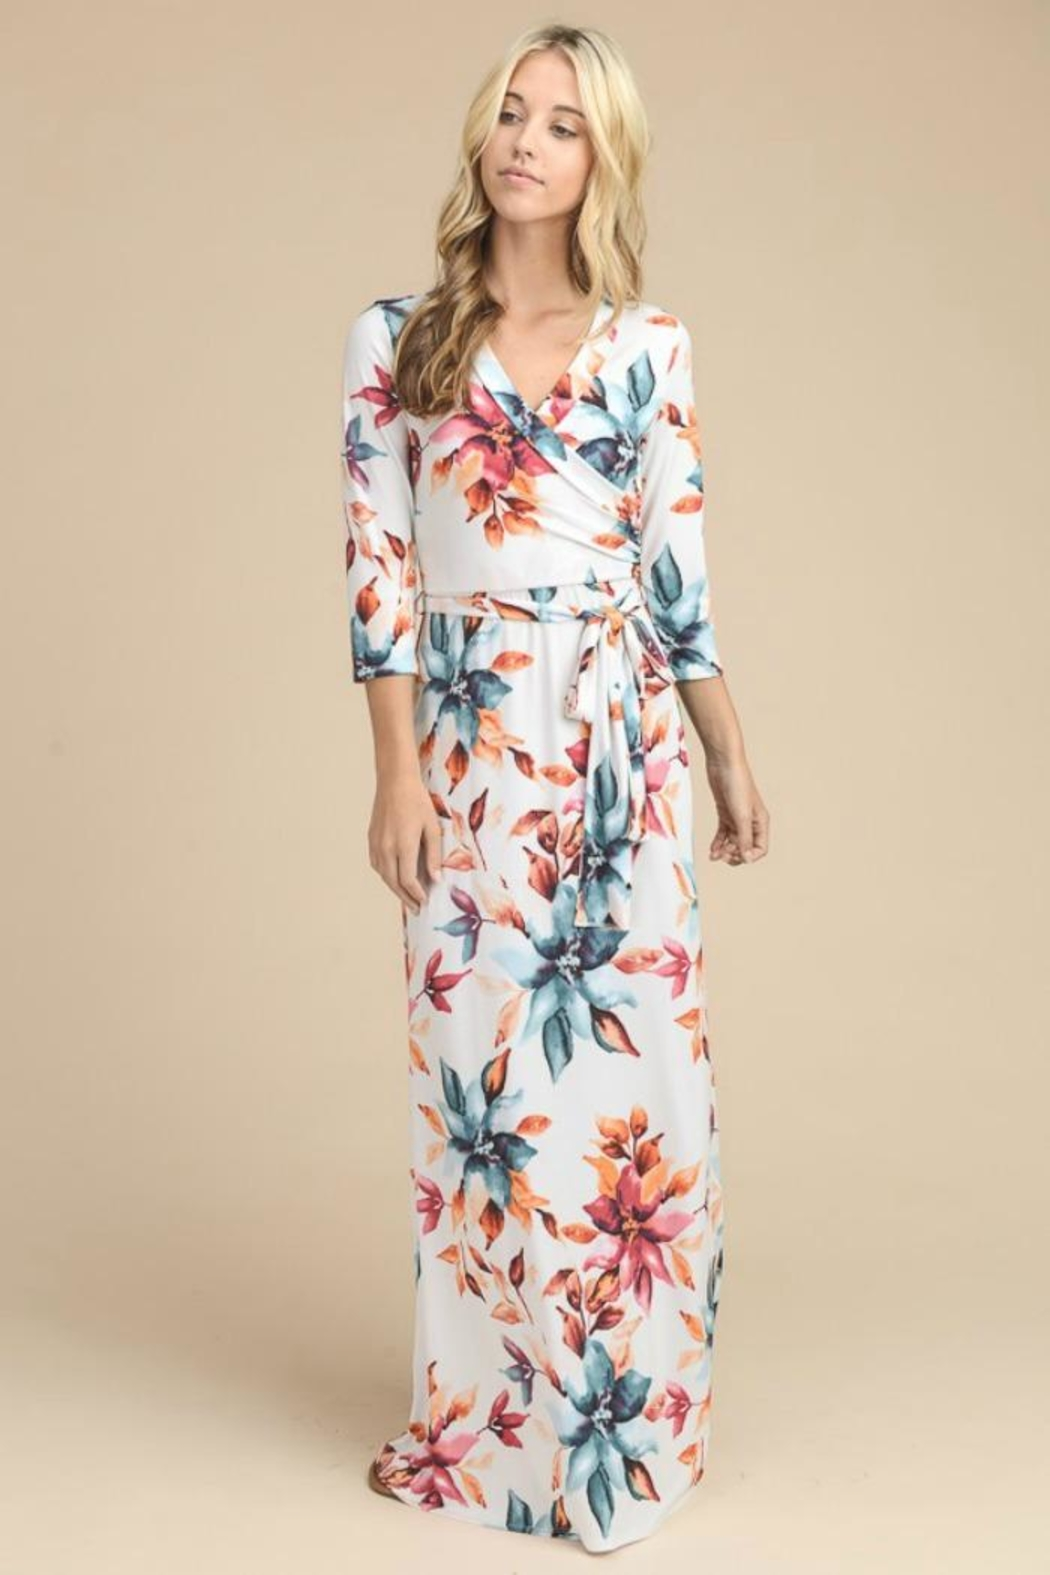 Vanilla Bay Floral 3 4 Sleeve Maxi Dress From Minnesota By 1776